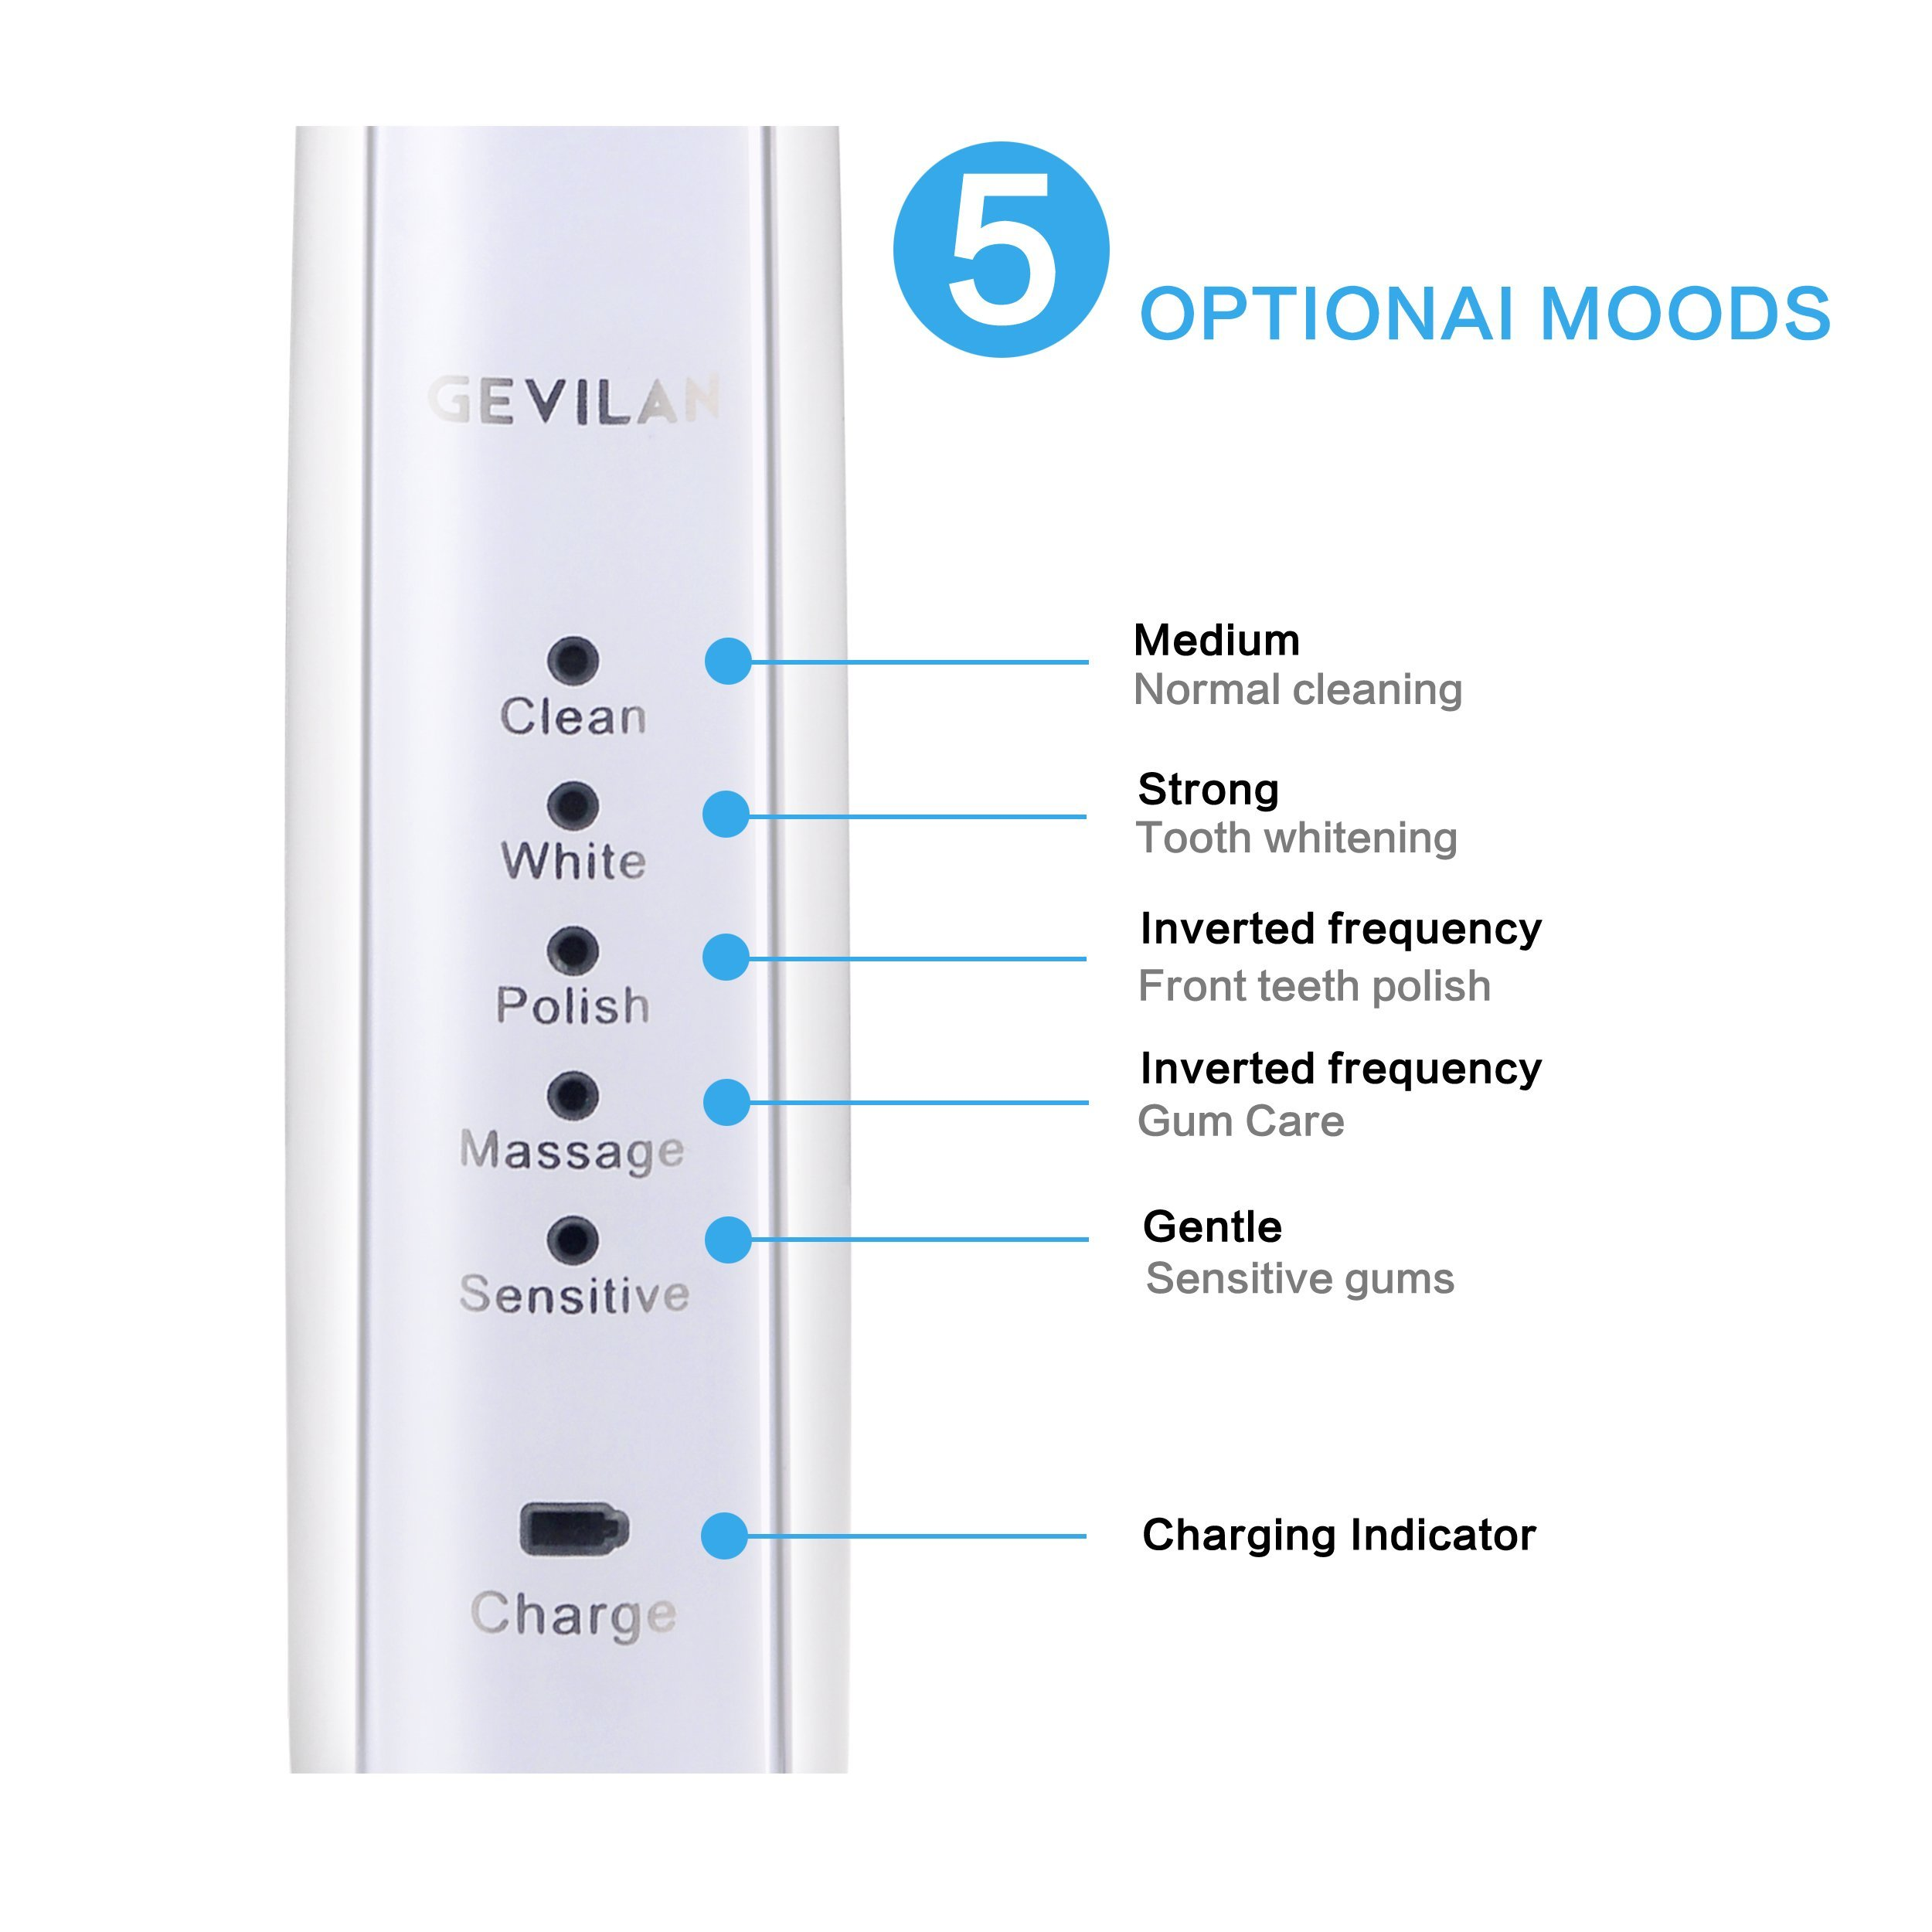 Sonic Pro Electric Toothbrush by Gevilan, 48000 Powerful Vibration with Rechargeable Battery, 5 Cleaning Modes with Smart Timer, Waterproof and Portable for Daily Oral Beauty Care, Home and Travel